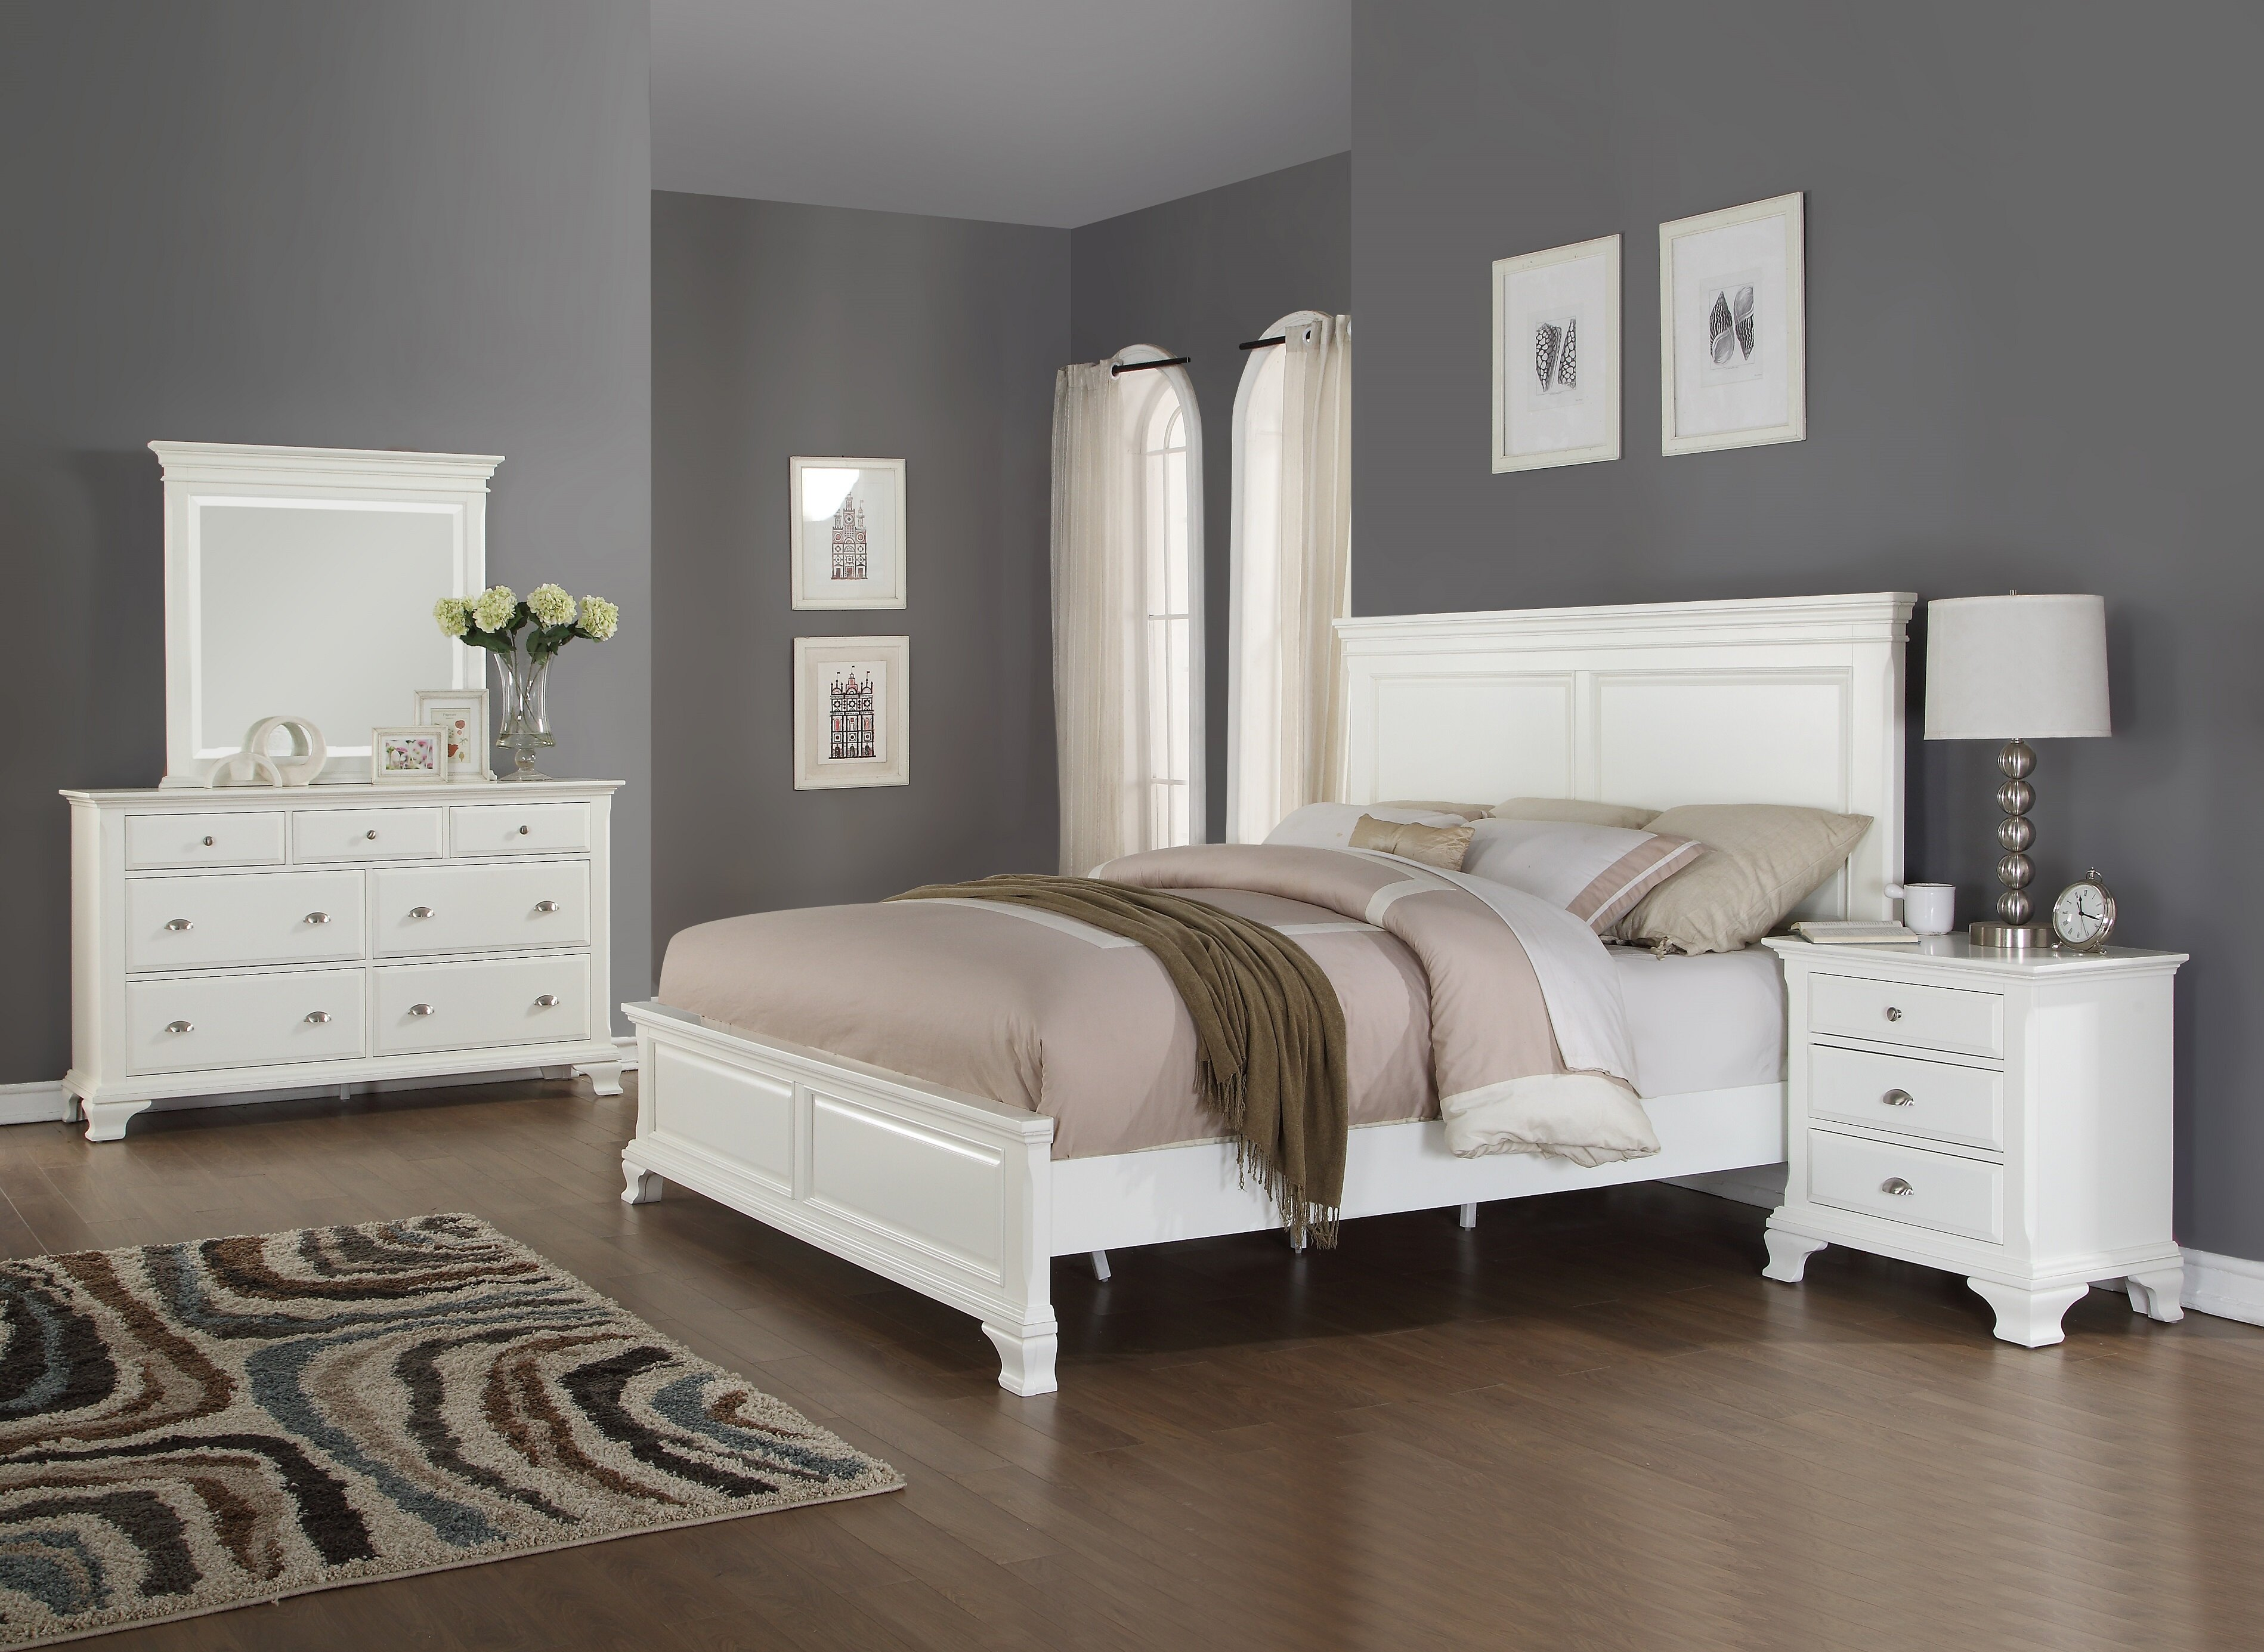 Fabulous Solid Wood Bedroom Sets Youll Love In 2019 Wayfair Home Interior And Landscaping Ologienasavecom